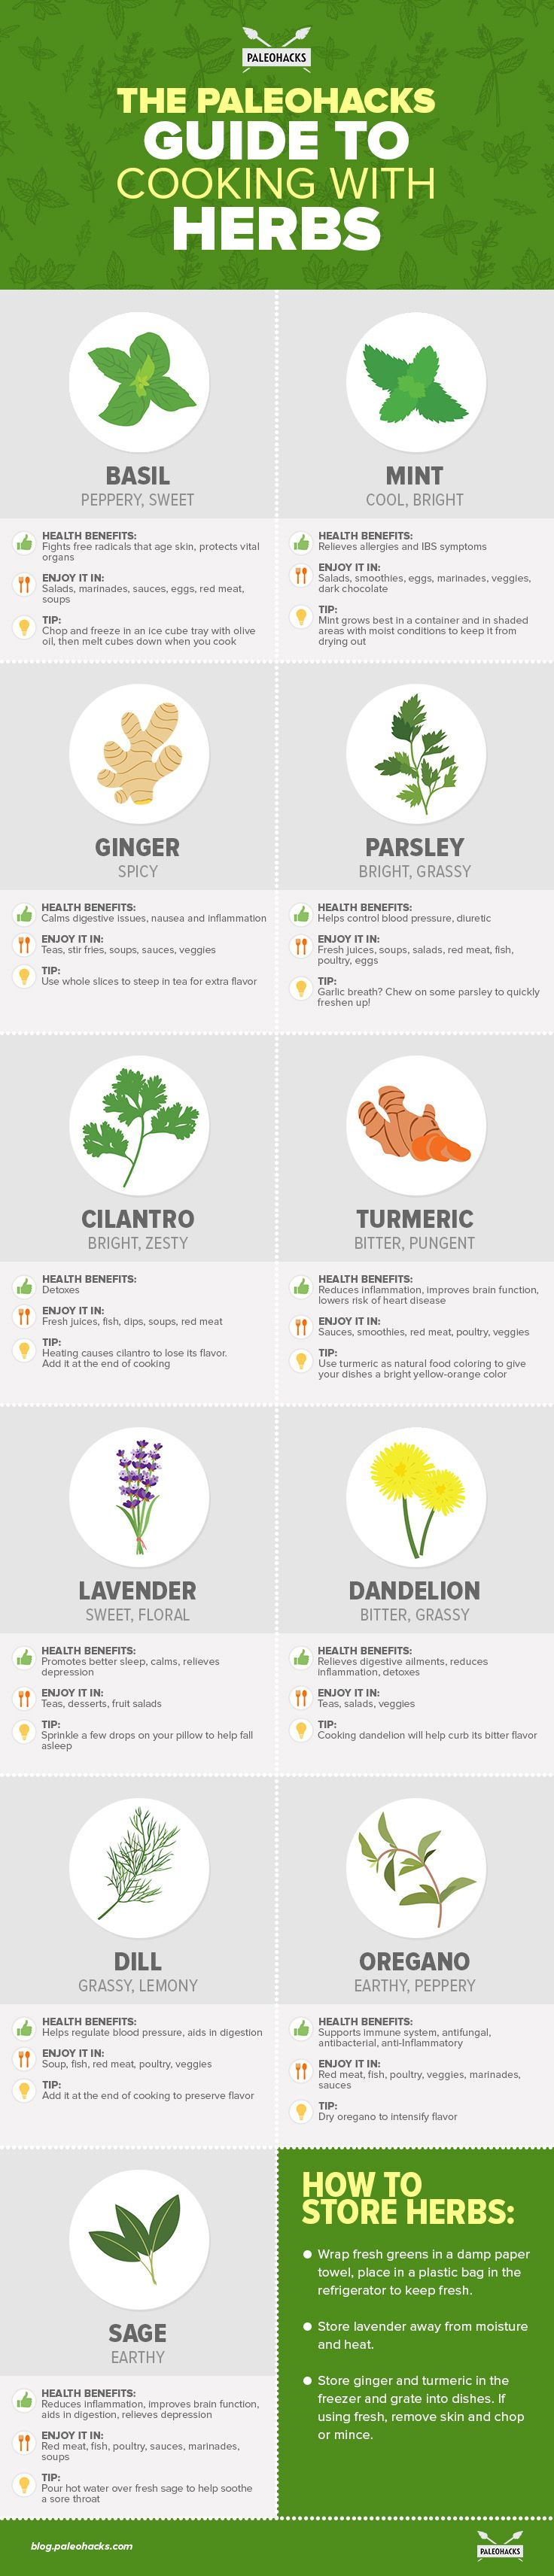 The_PaleoHacks_Guide_to_Cooking_with_Herbs-infog-updated